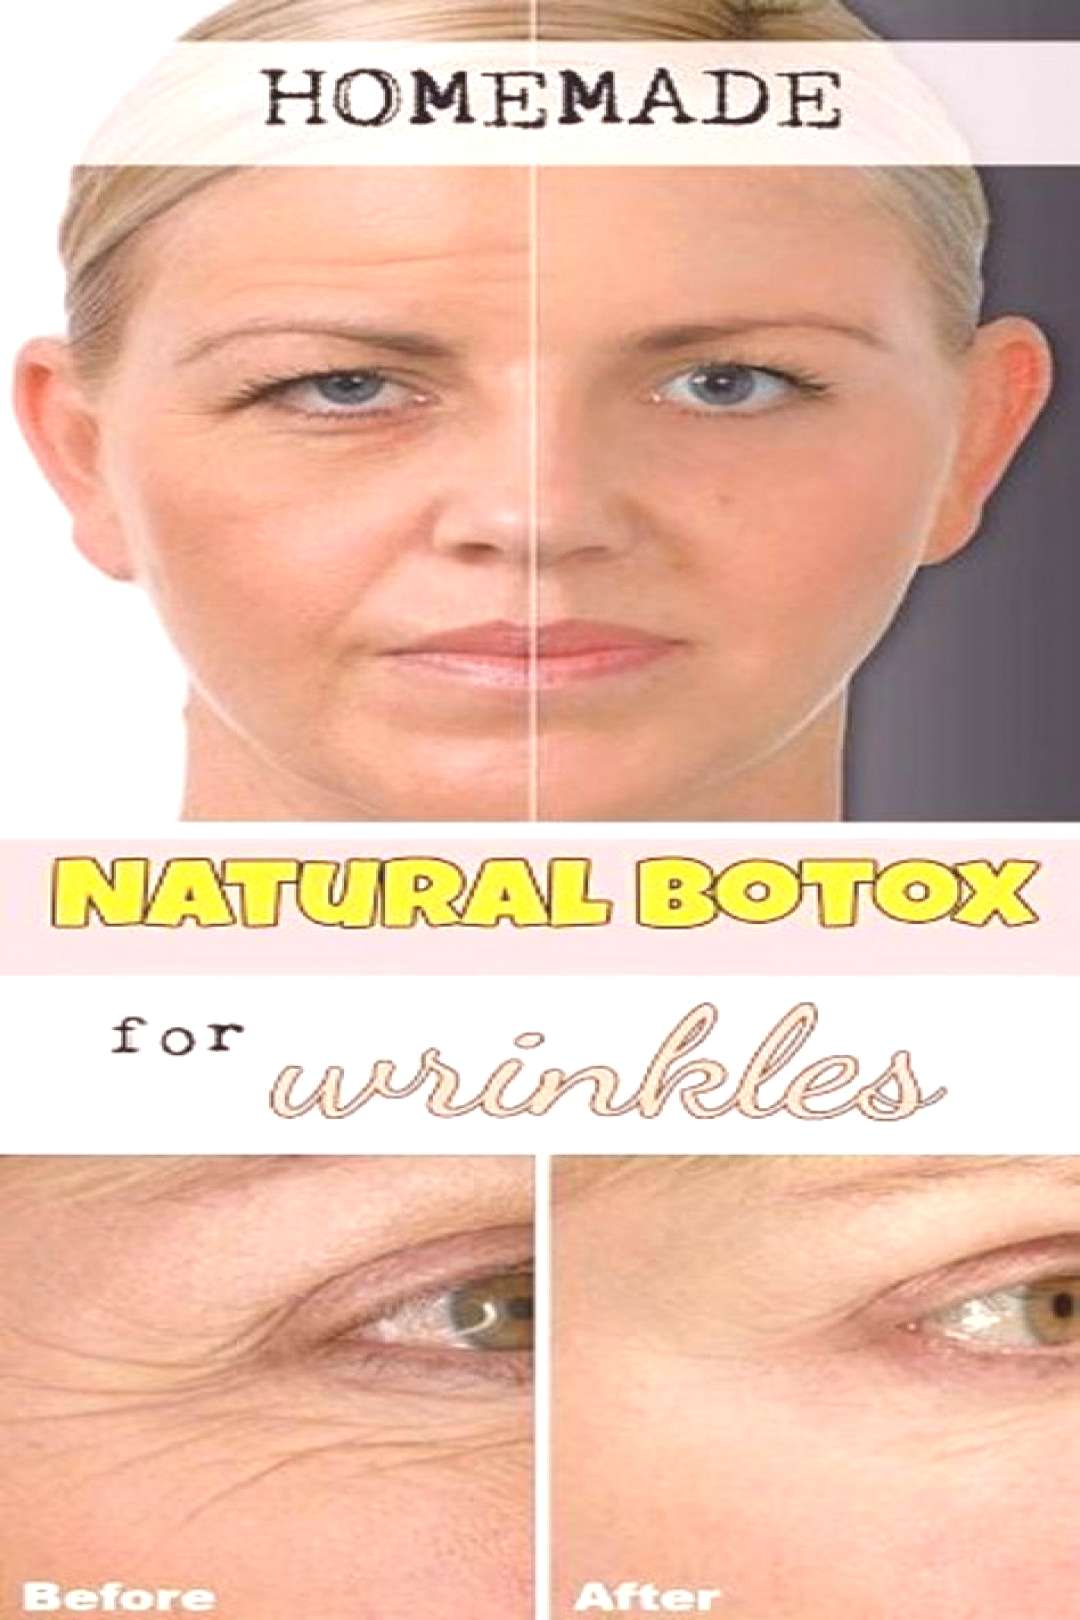 Homemade Cream with Botox Effect for Wrinkles